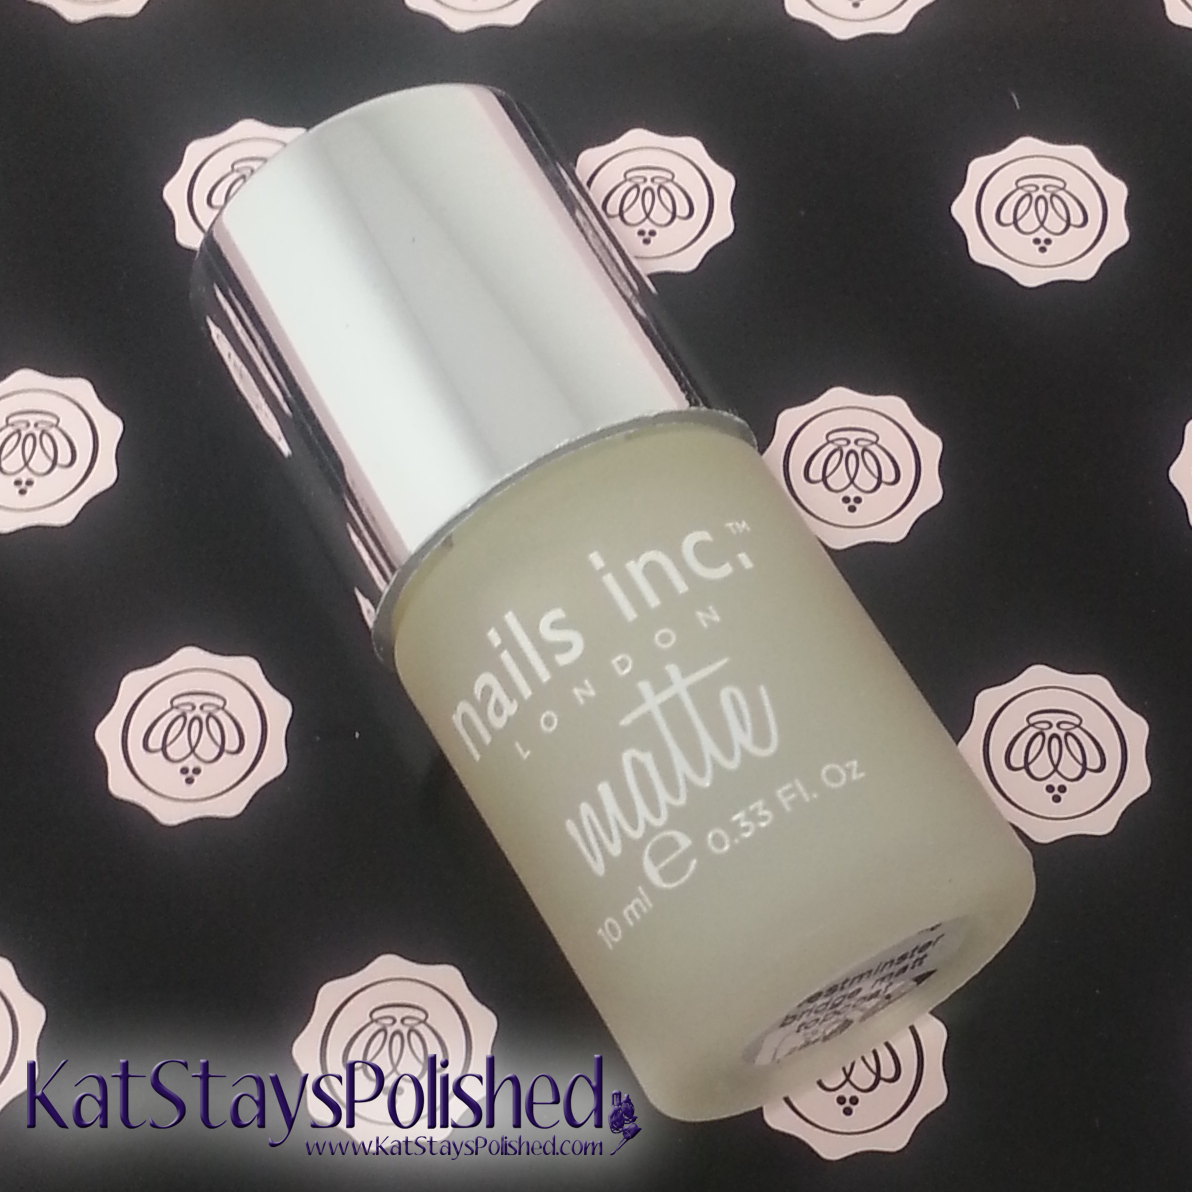 Glossybox October 2014 - Nails Inc Westminster Bridge Matte Top Coat | Kat Stays Polished